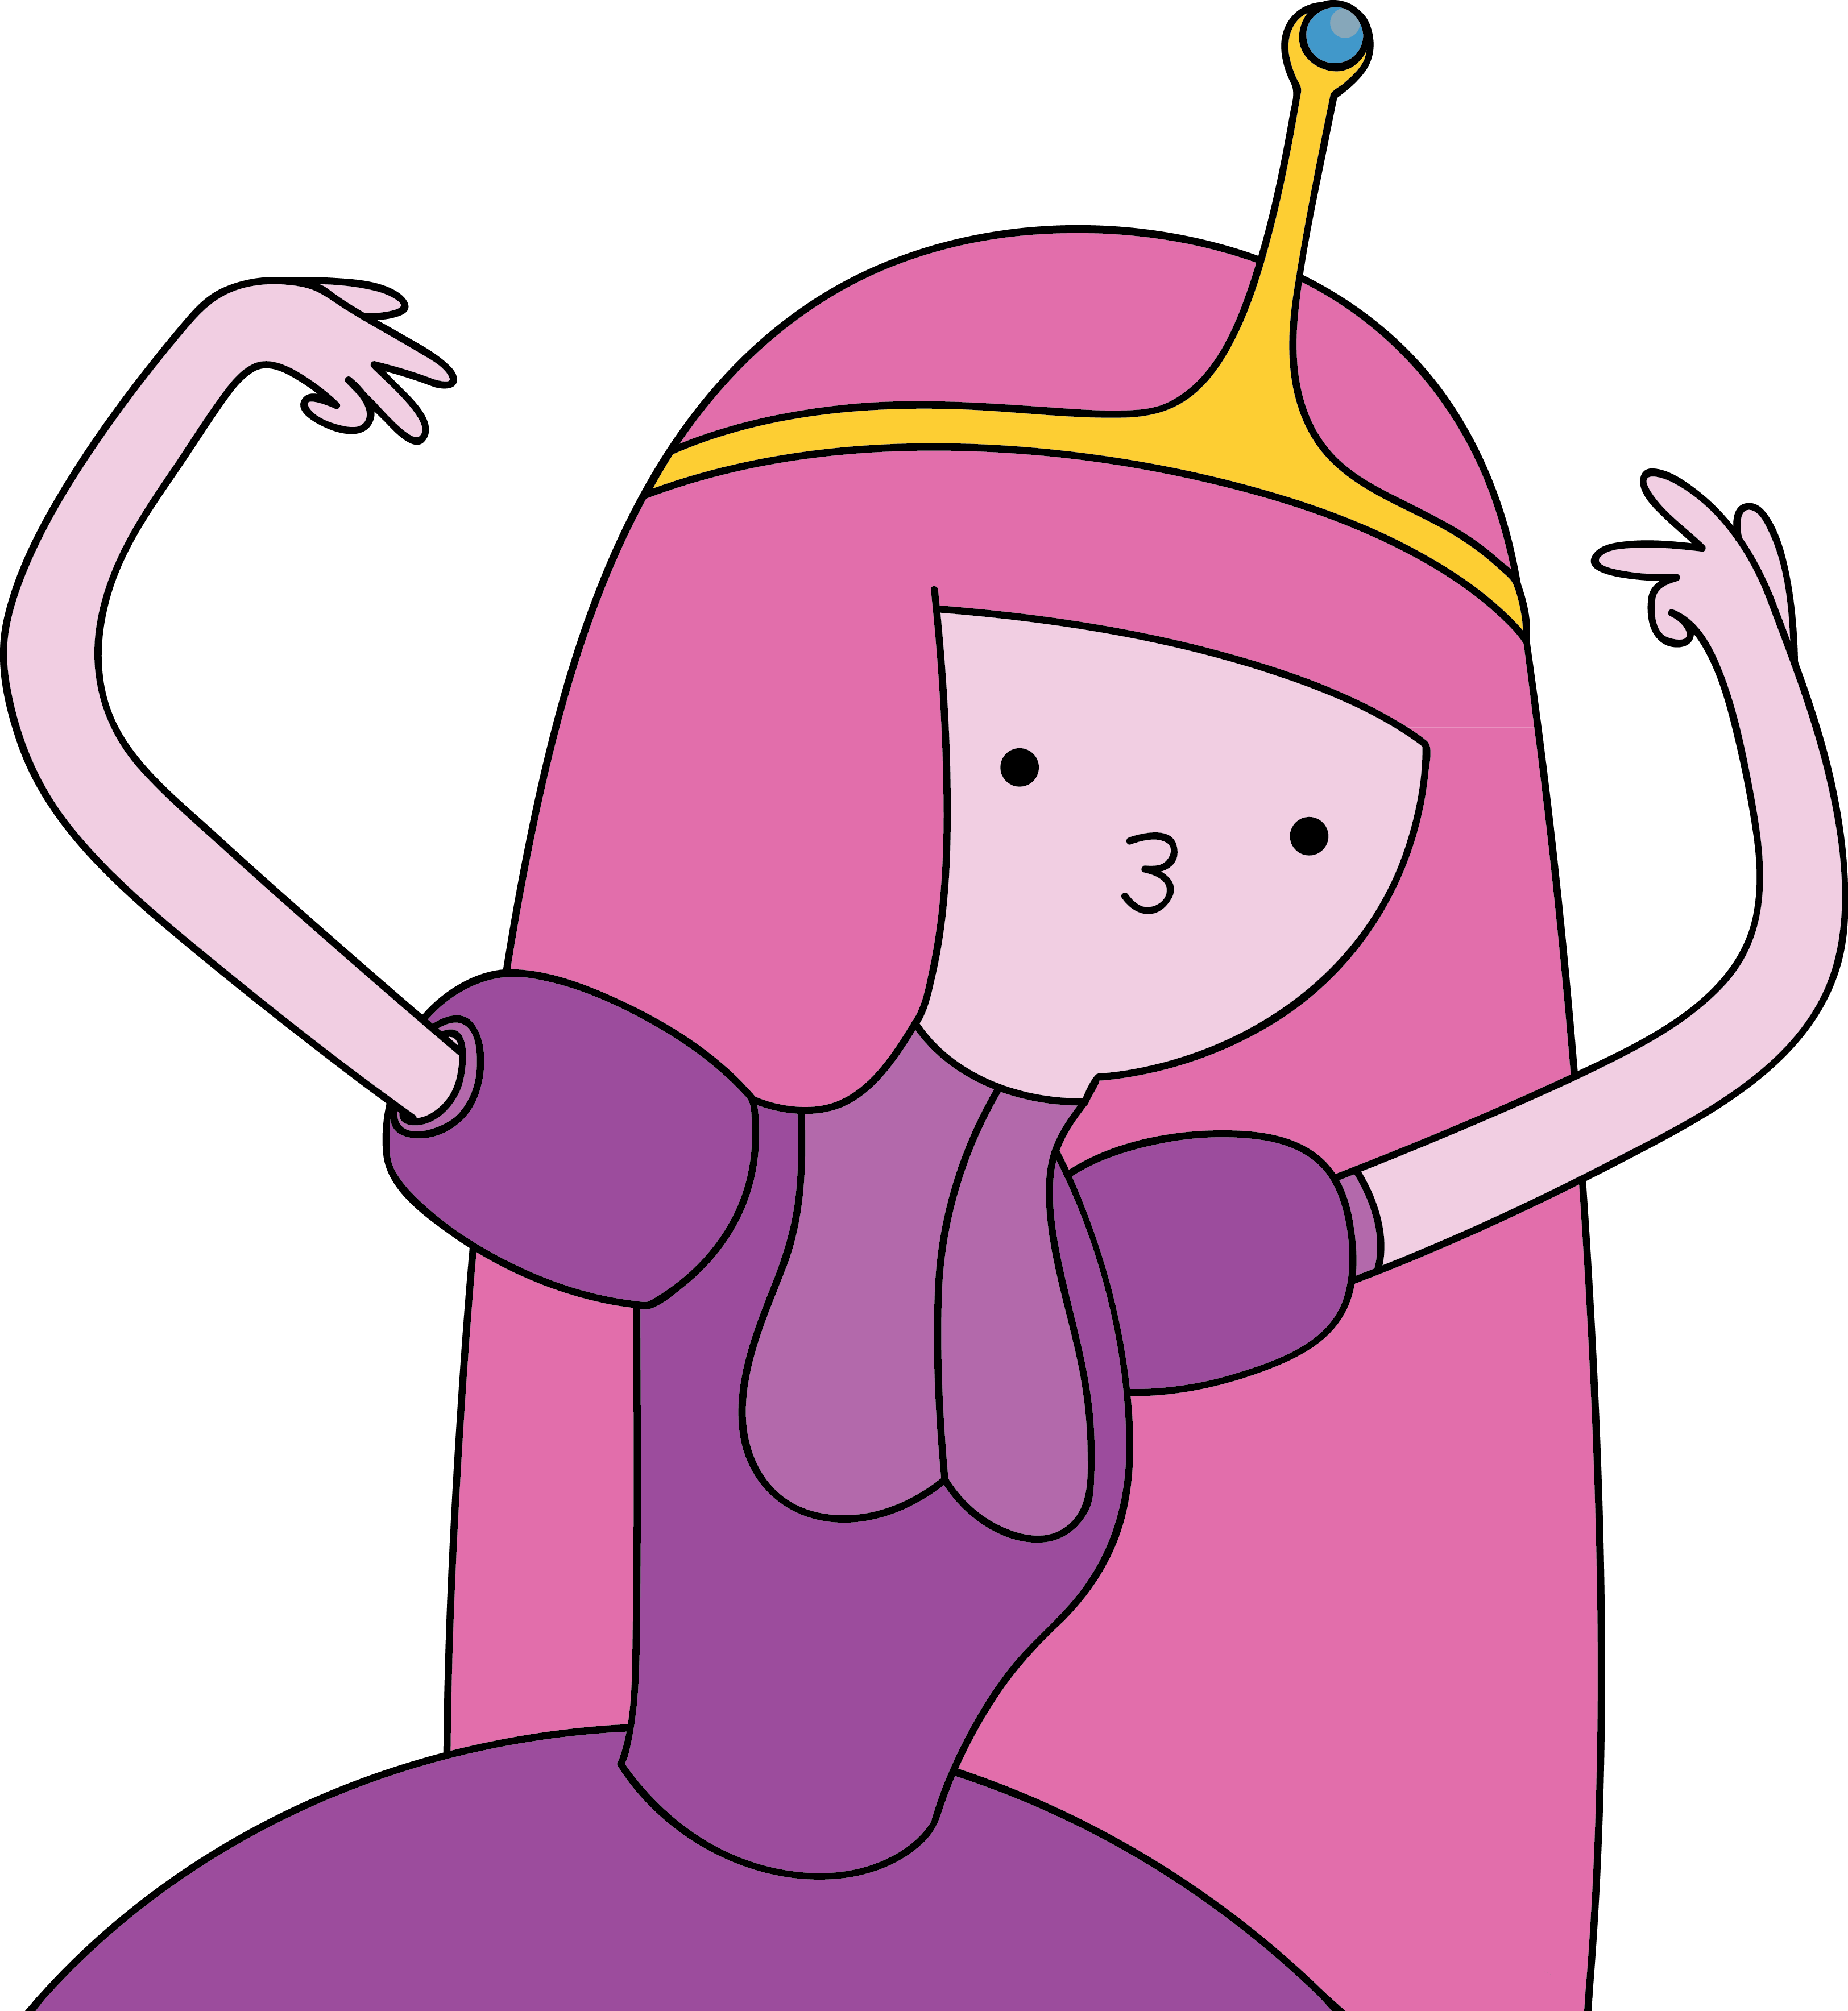 Princess Bubblegum, an all-pink princess with kissy lips